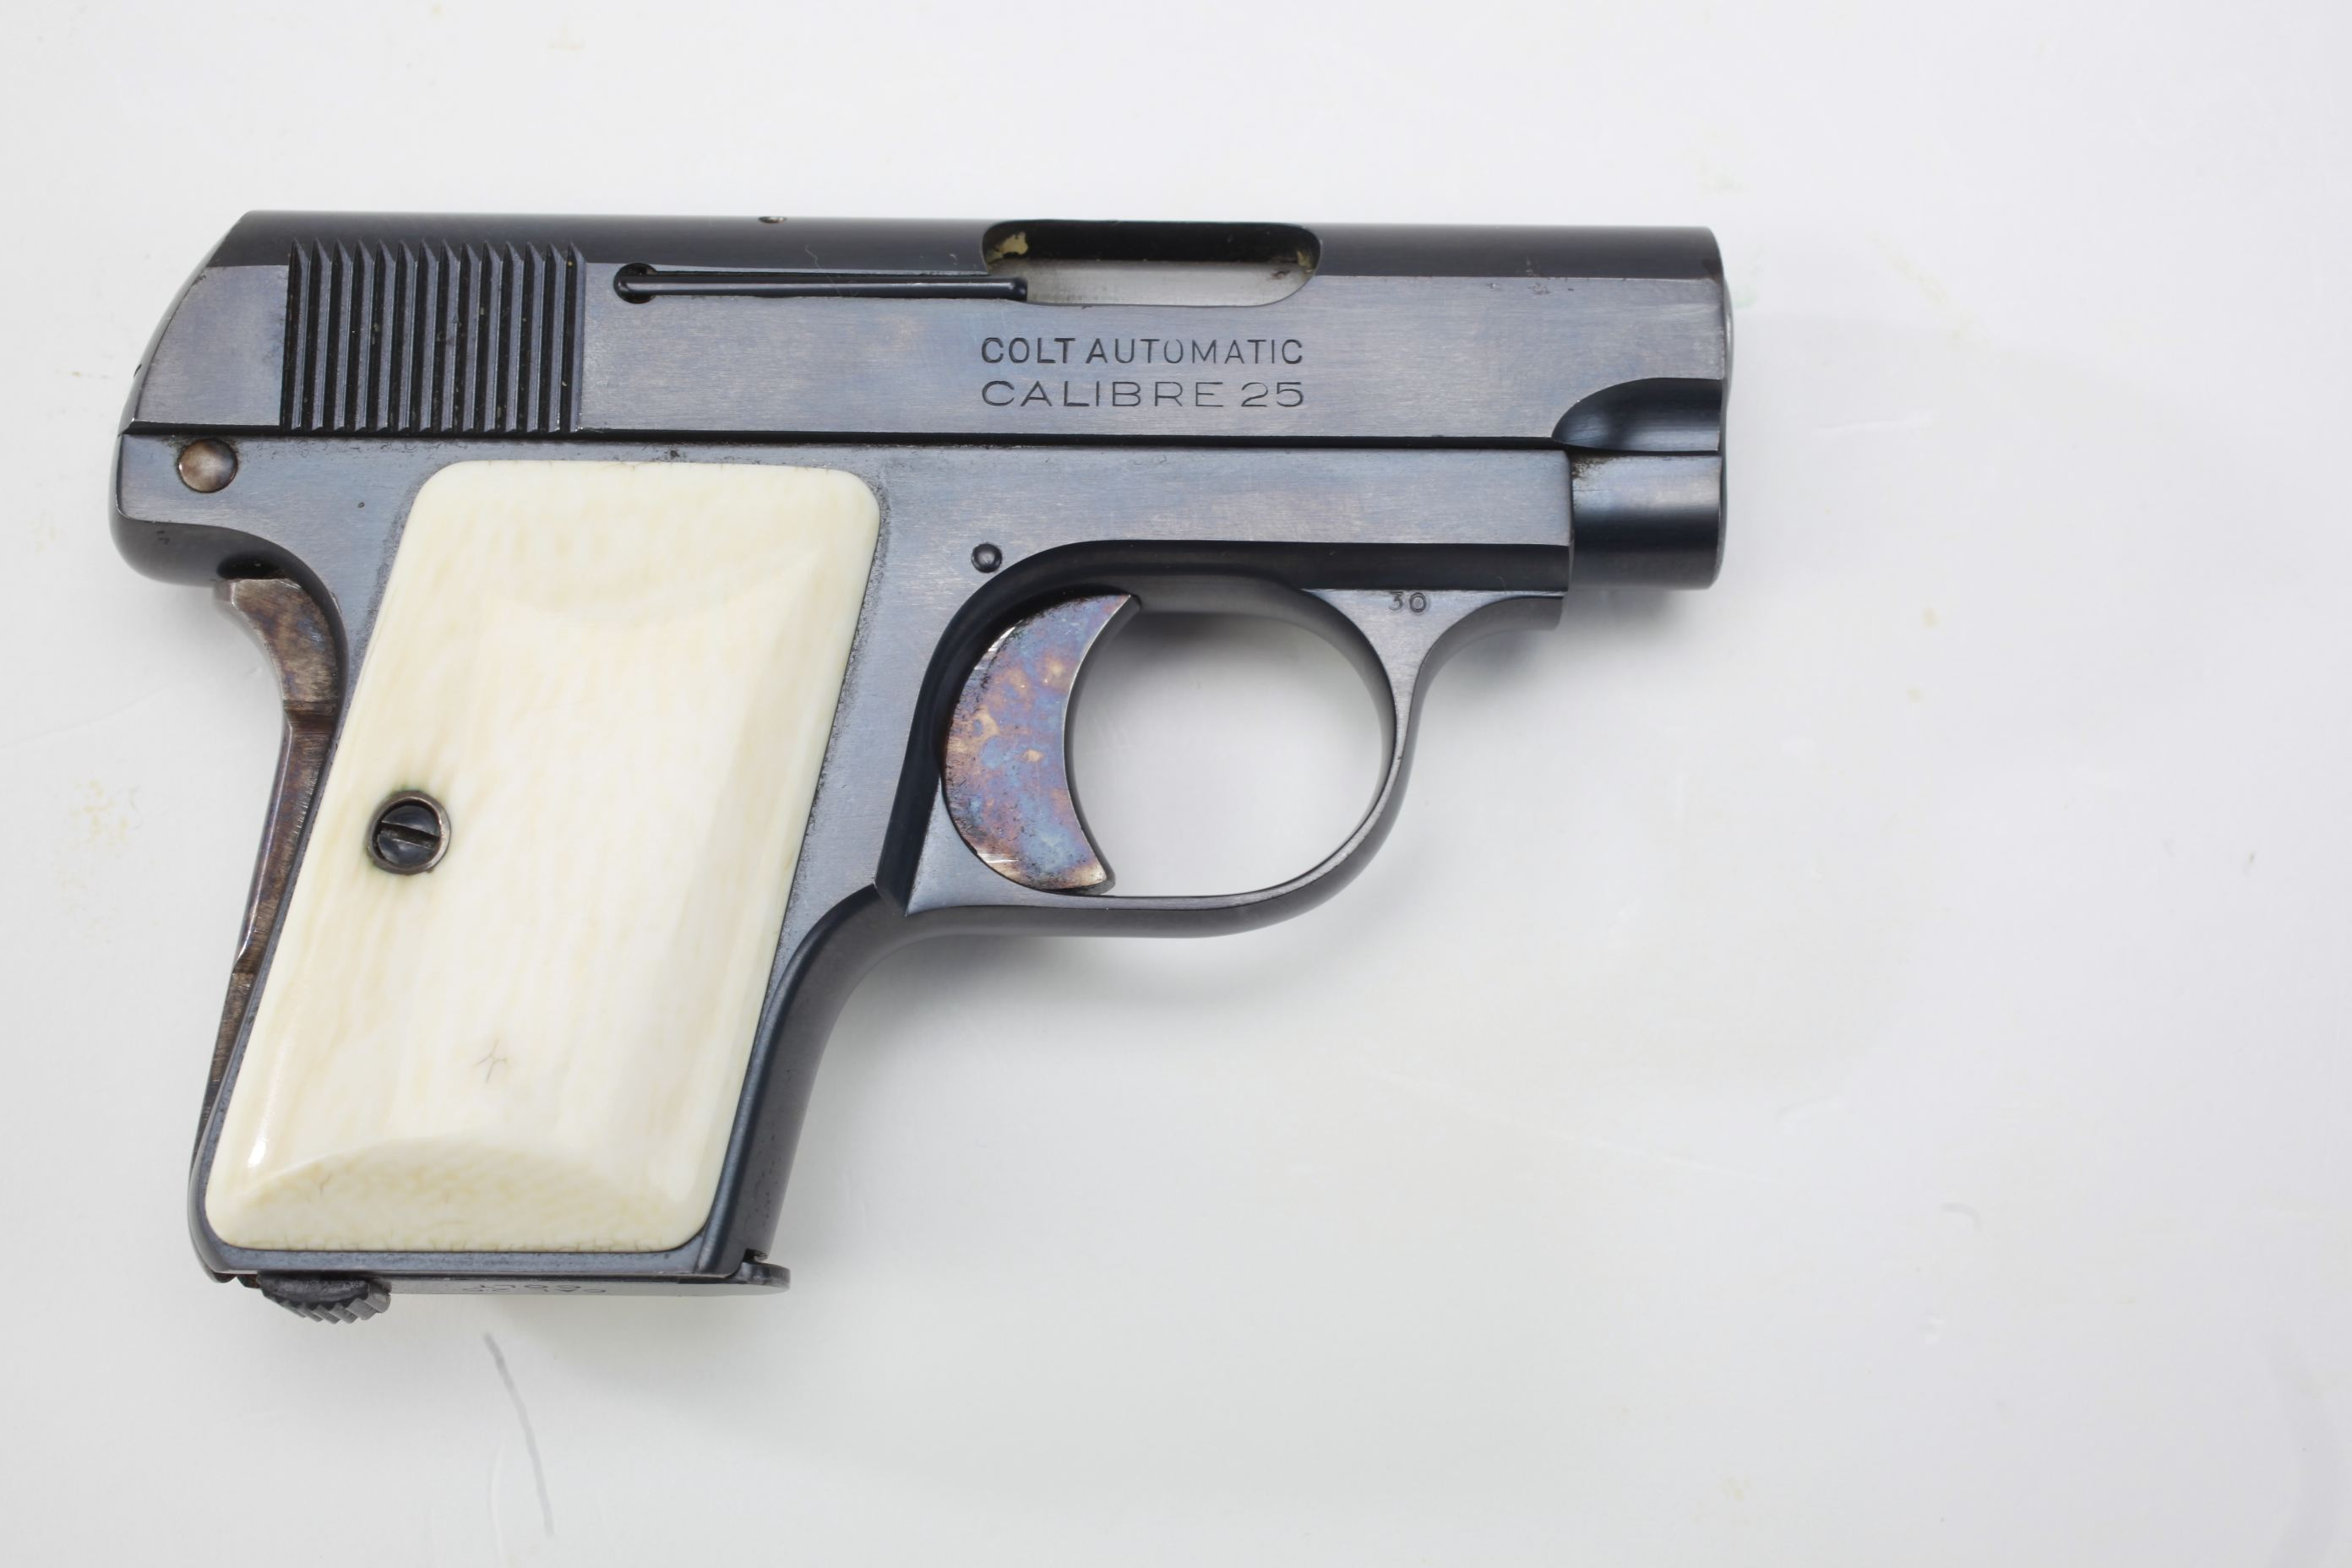 Colt Model 1908 Hammerless 25 Caliber Automatic Pistol